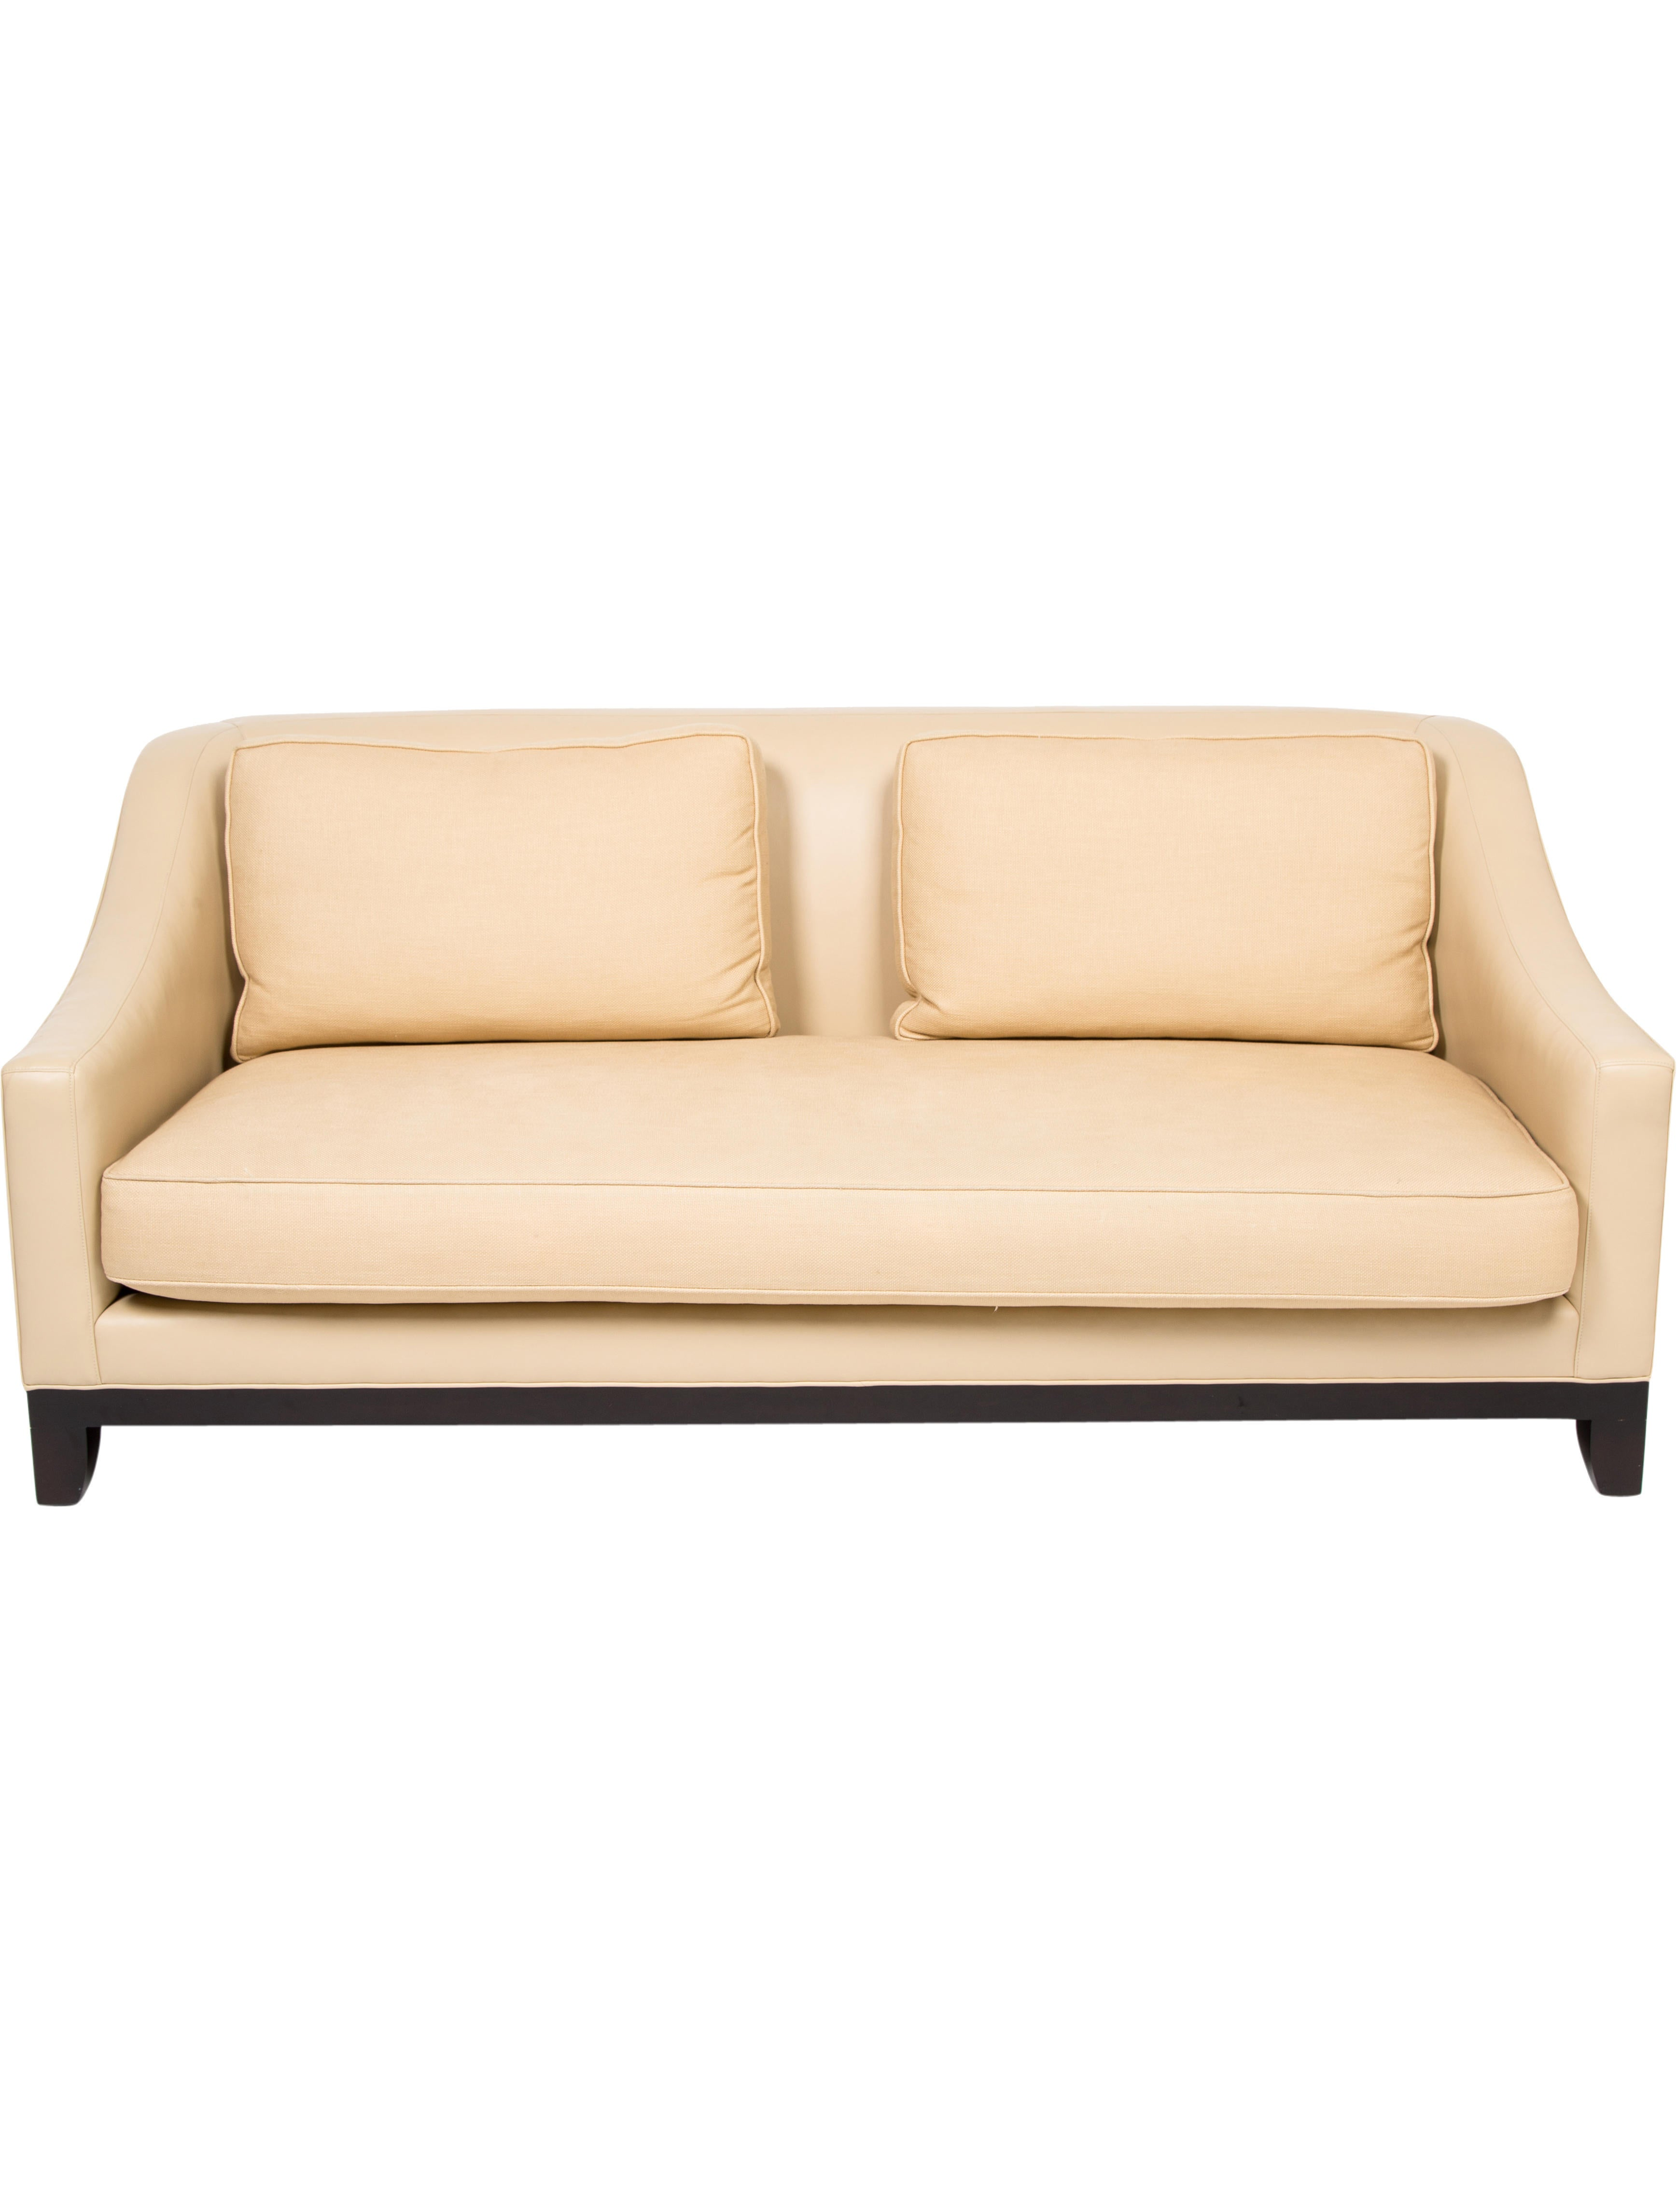 Sofa W/ Contrast Upholstery